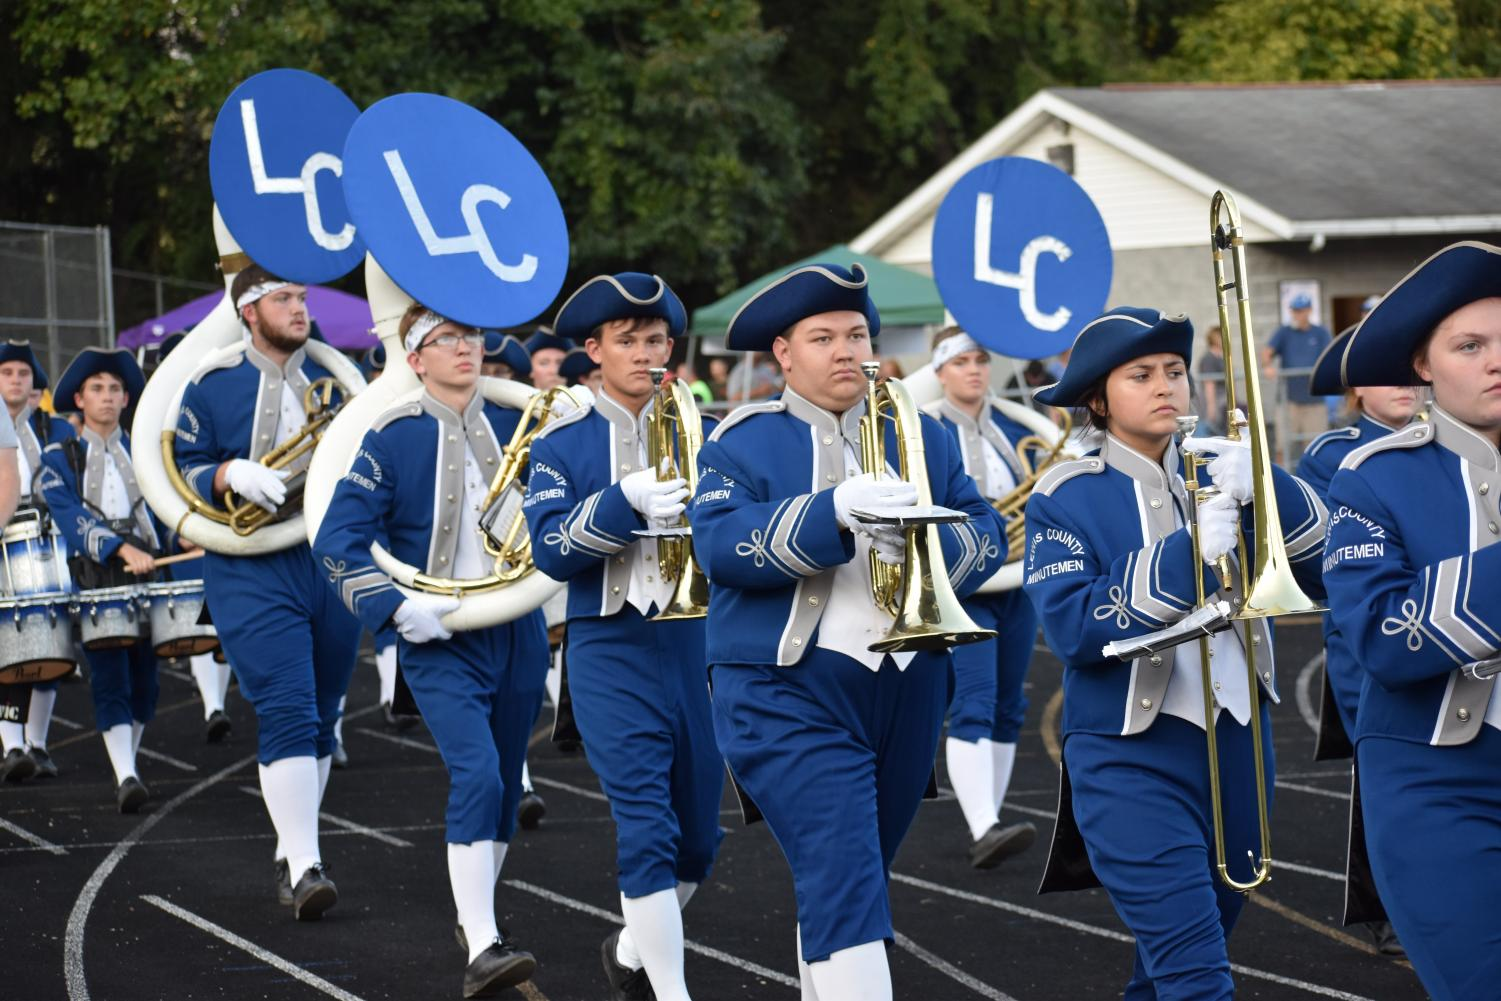 The LCHS Band takes to the field to debut its 2029 field show.